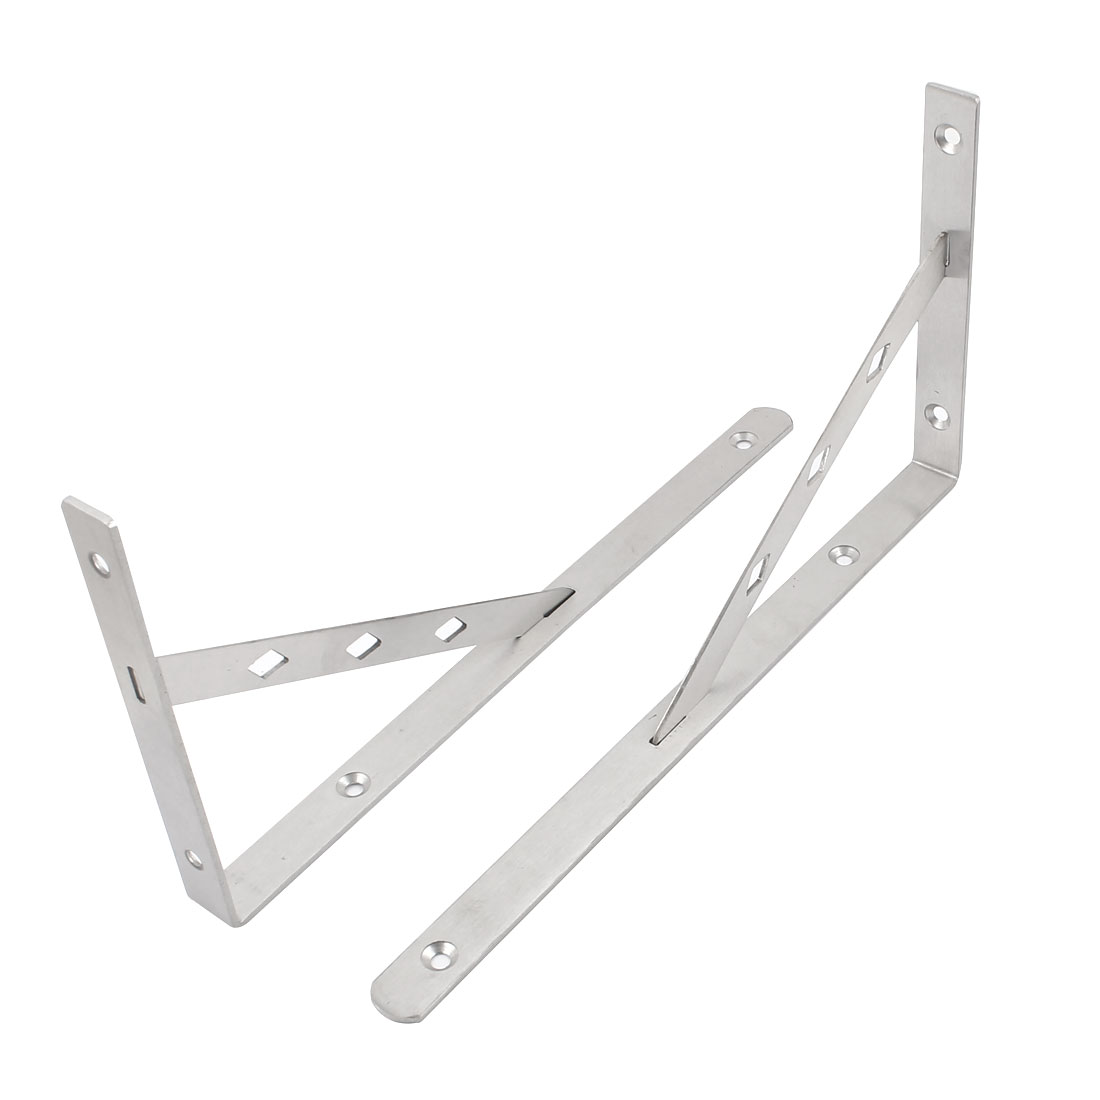 "2 Pcs Silver Tone Right Angle Shop Store Wall Mounted Shelf Brackets 12"" x 6"""